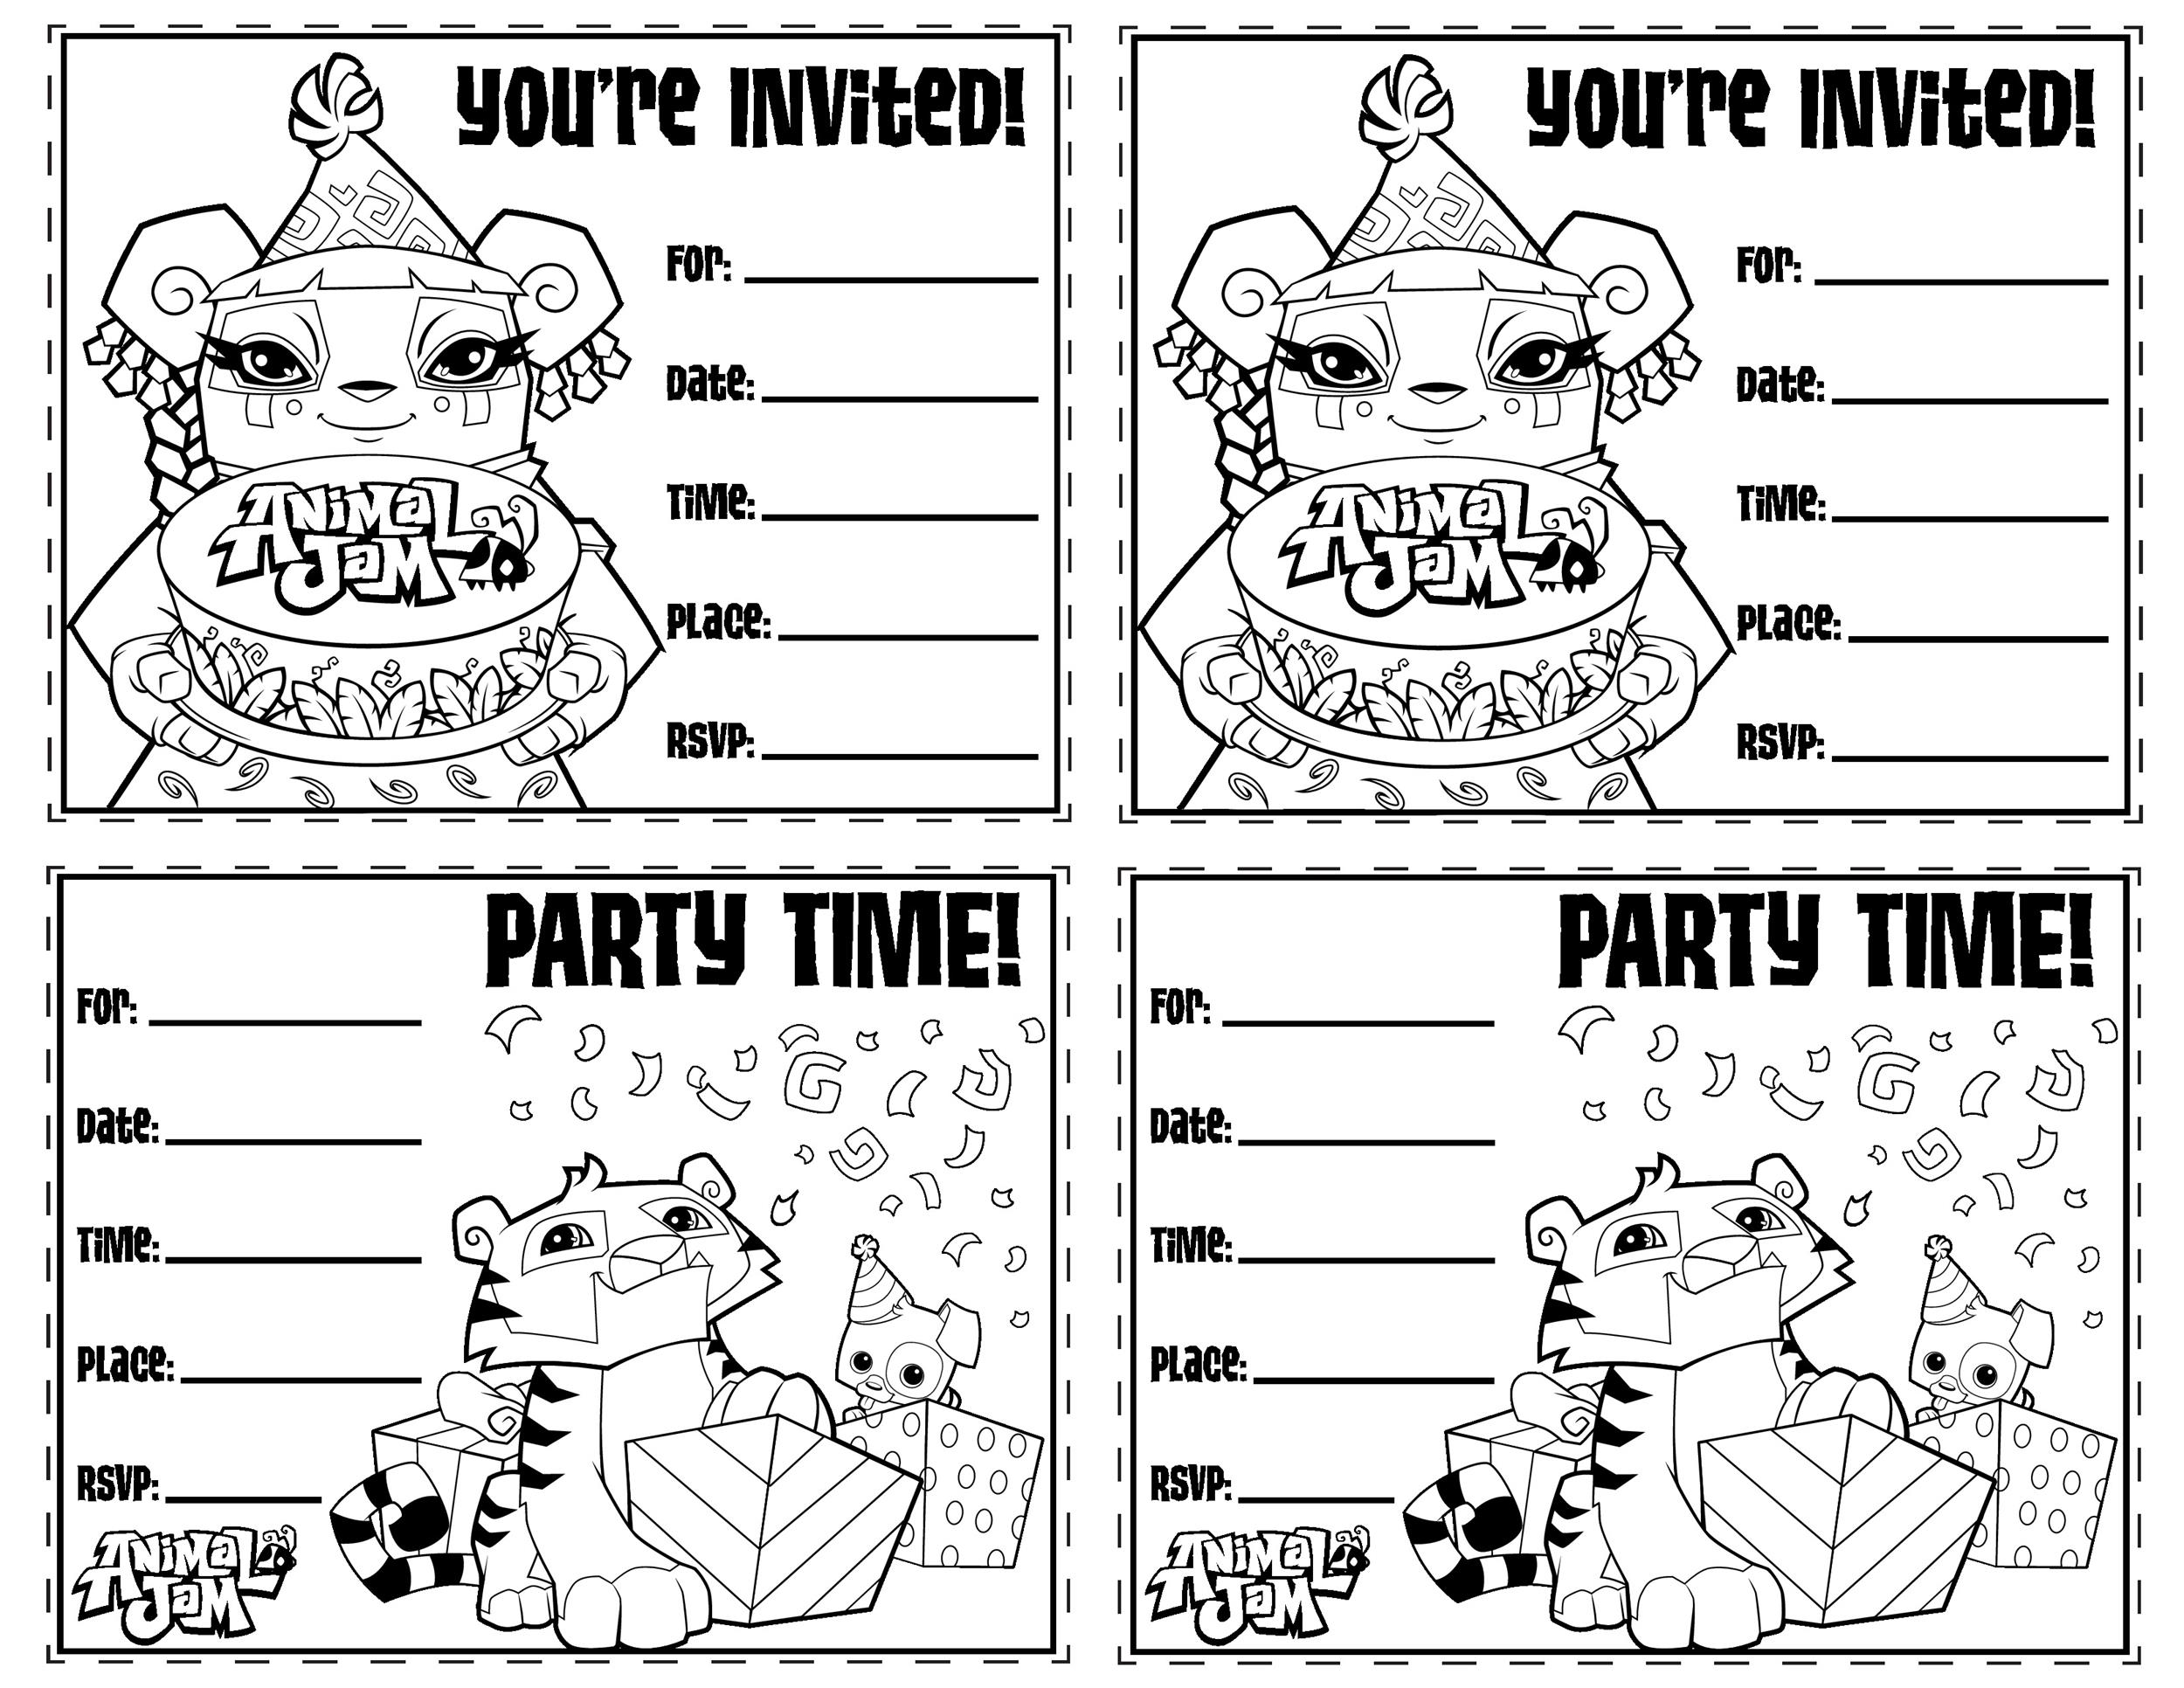 40 Free Birthday Party Invitation Templates Template Lab – What to Write on a Birthday Invitation Card